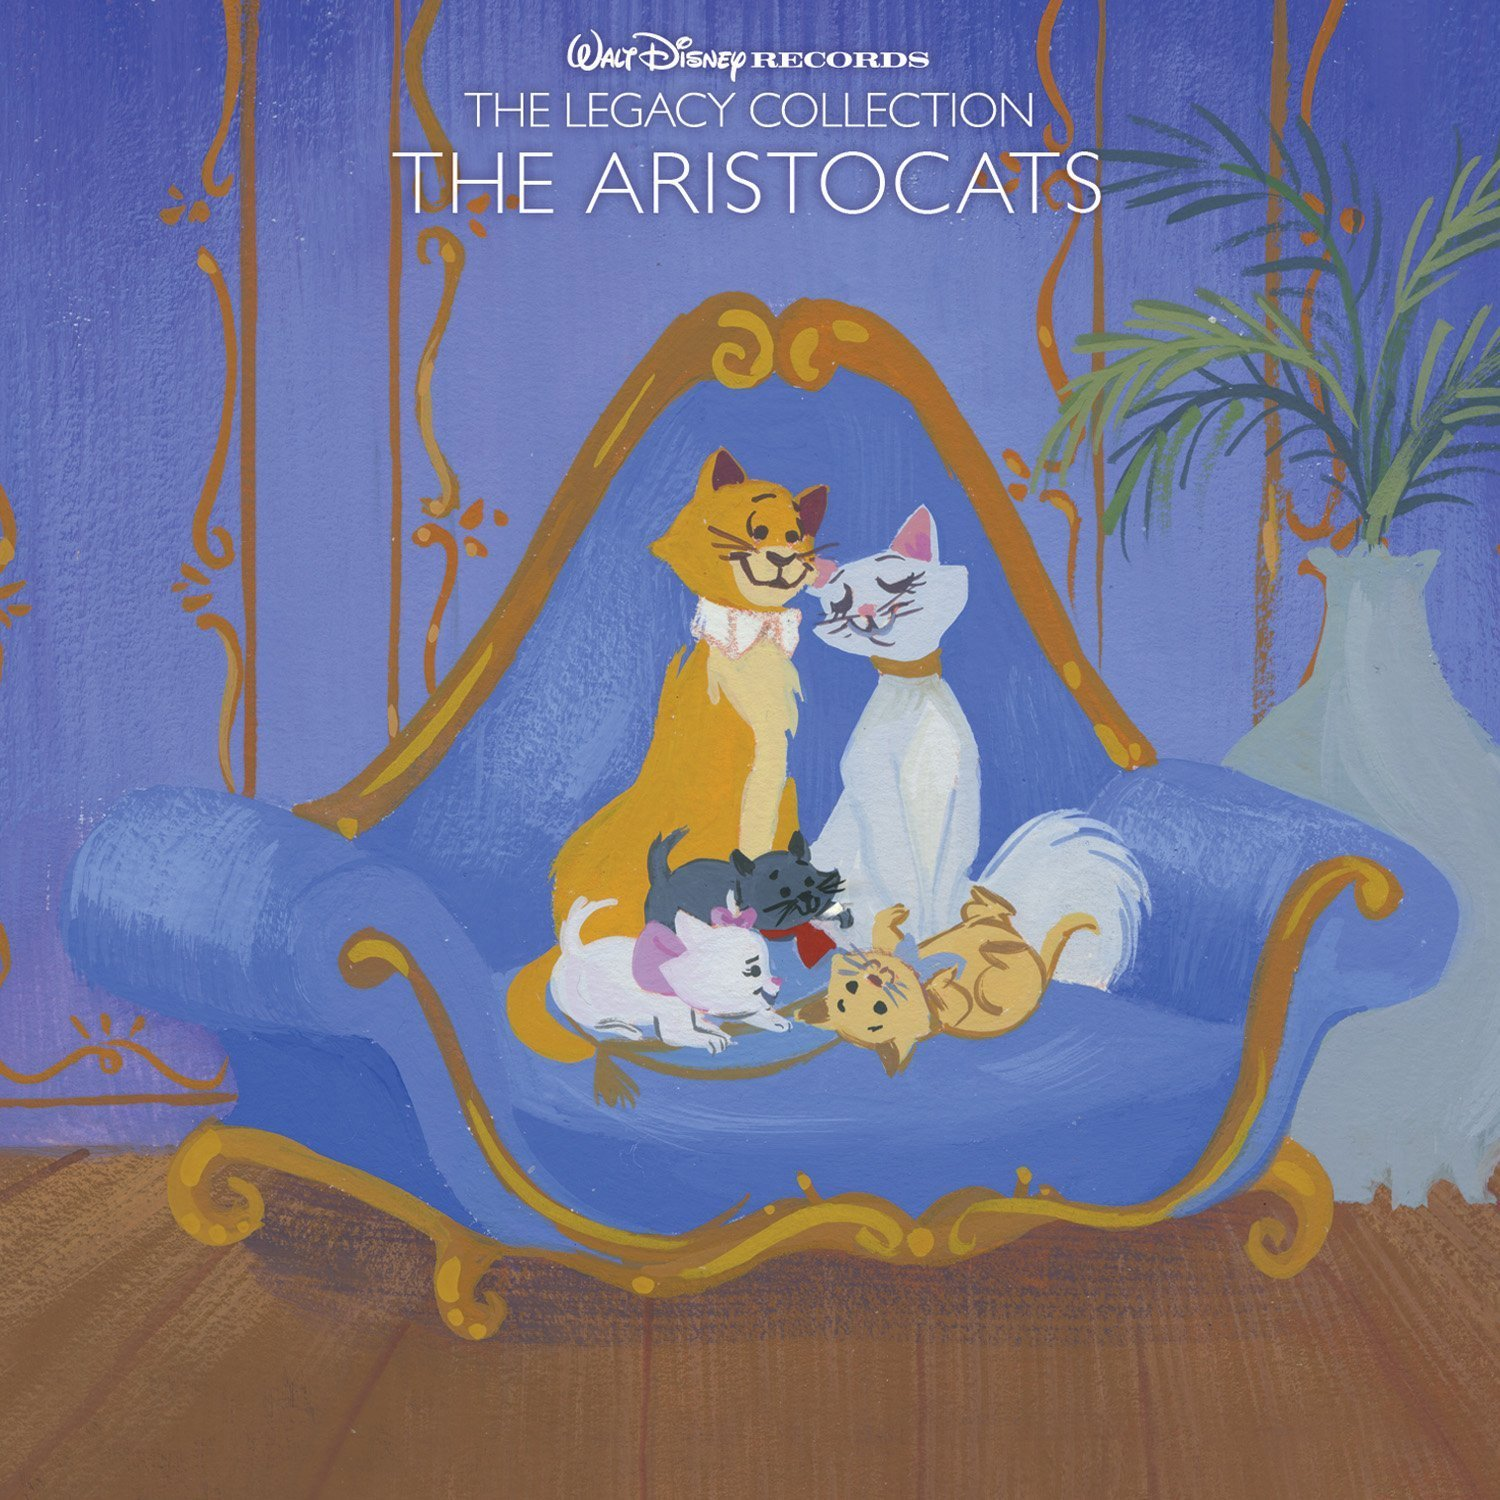 The Legacy Collection: The Aristocats Soundtrack Review